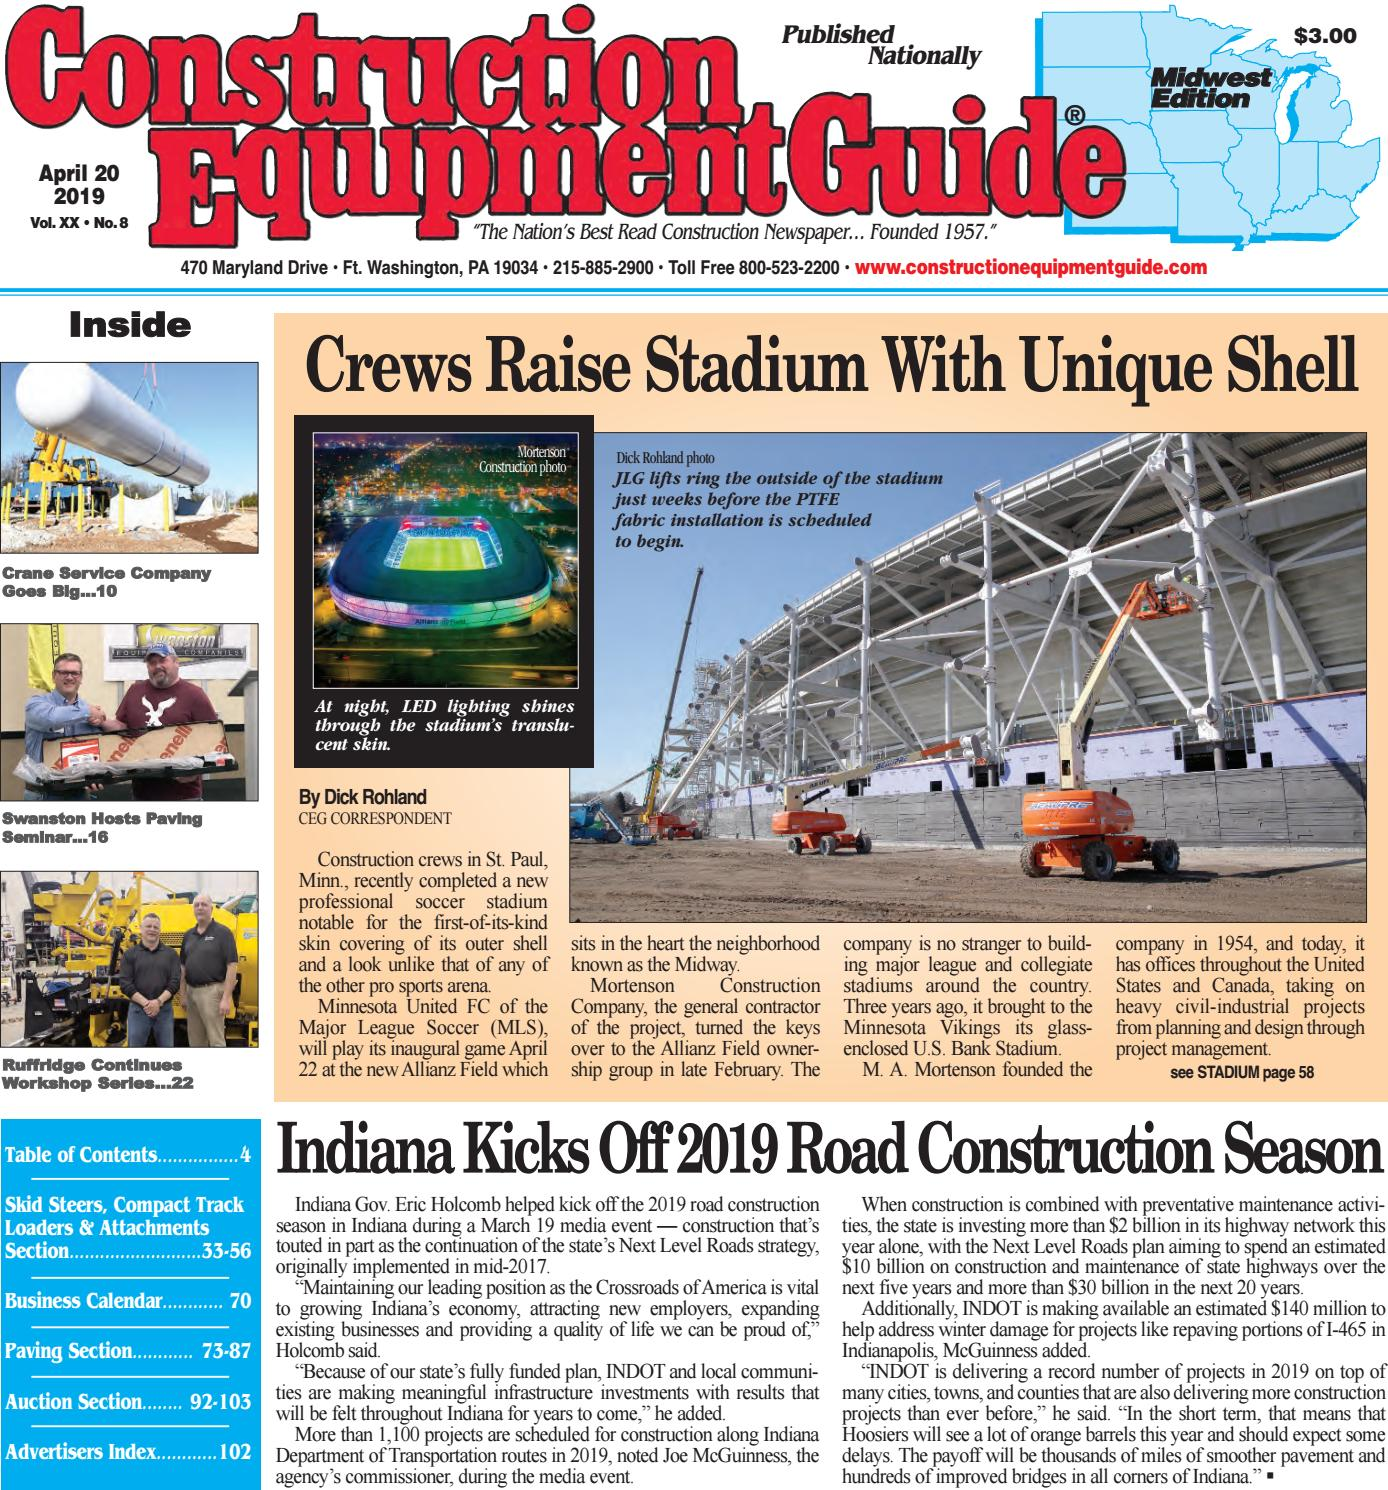 Midwest 8 April 20, 2019 by Construction Equipment Guide - issuu